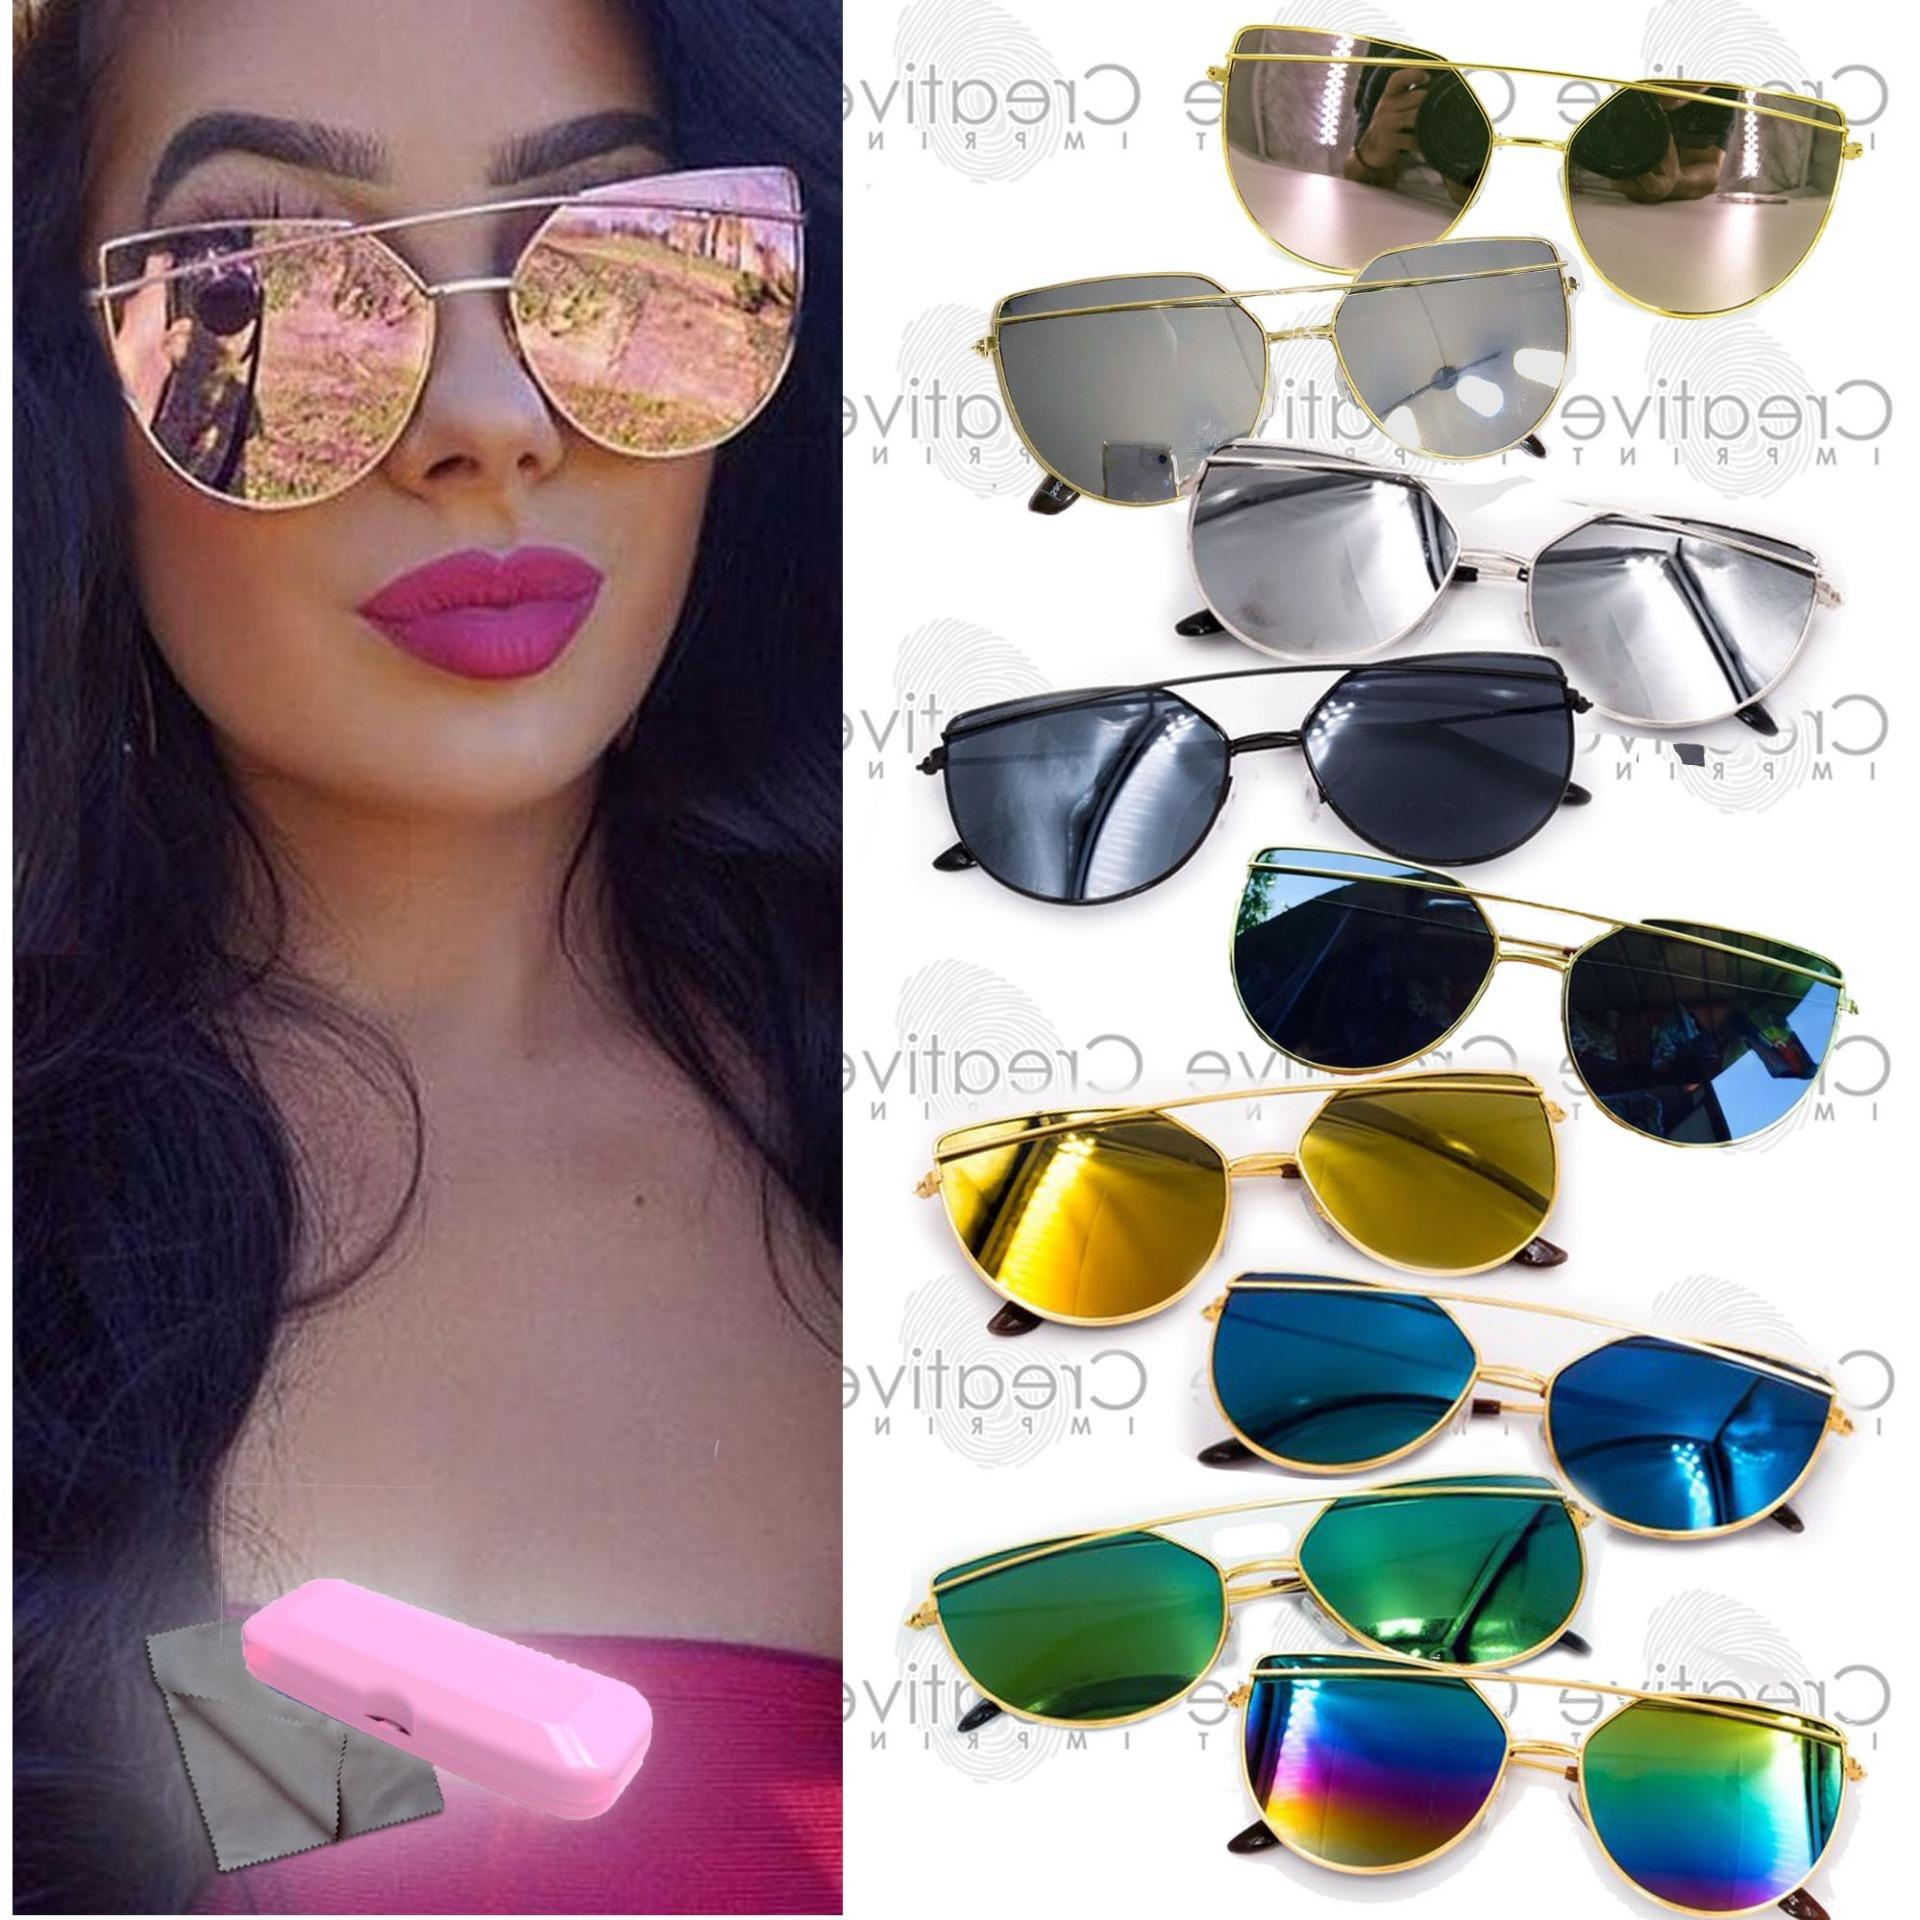 781a922fcc Double Bridge Cat Eye Flat Sunnies Sunglasses (FREE CASE WIPER) Shades  Light Metal Lens